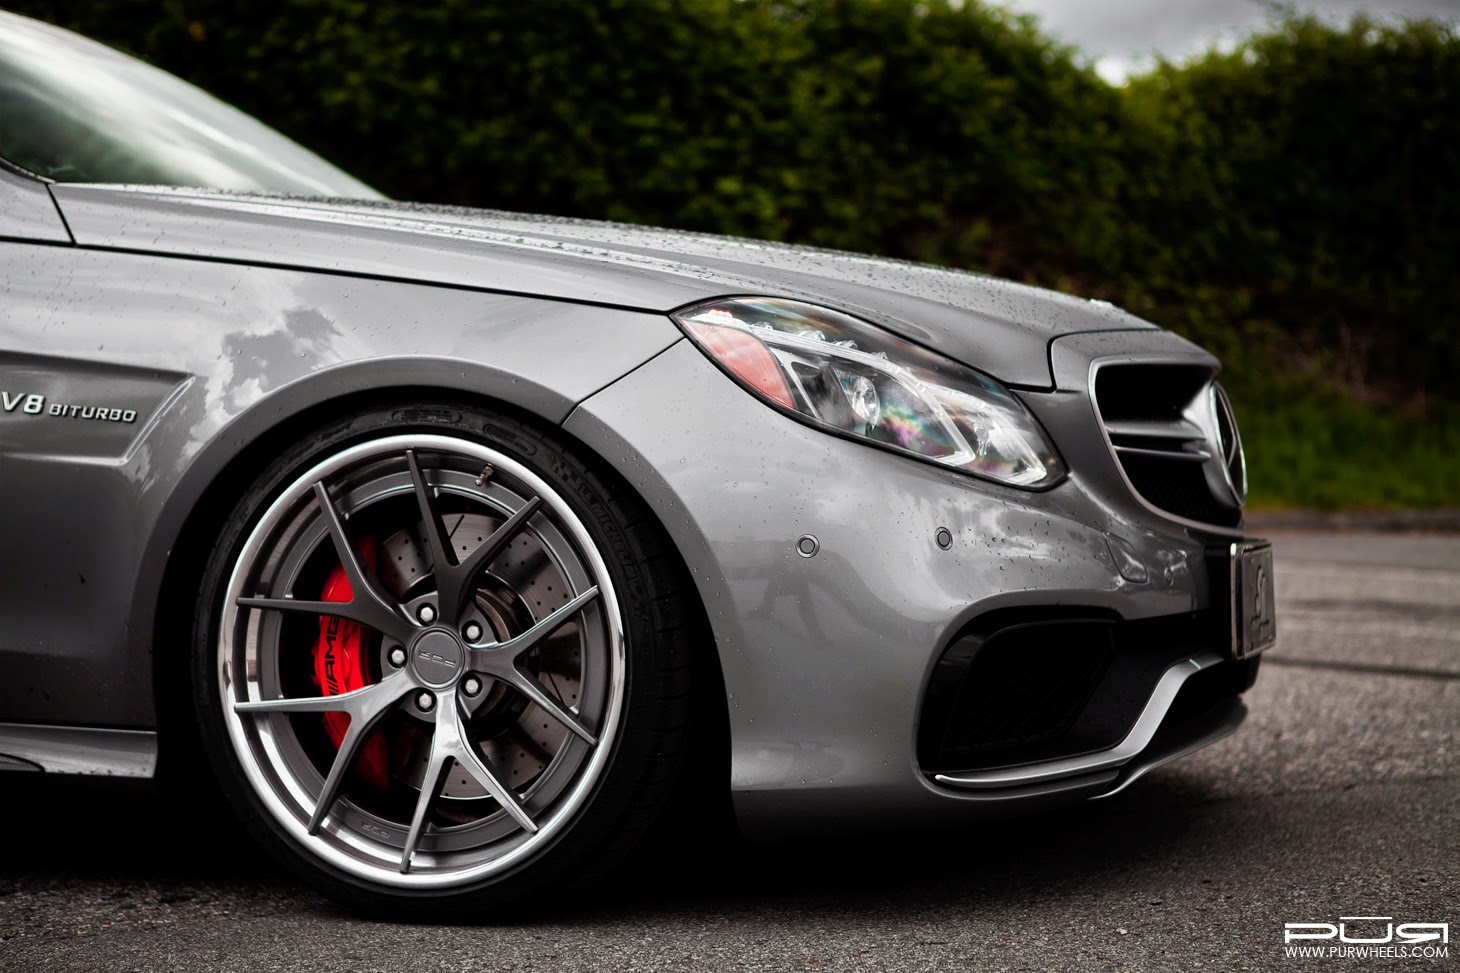 Mercedes benz w212 e63 amg facelift on pur wheels benztuning for Mercedes benz wheels rims